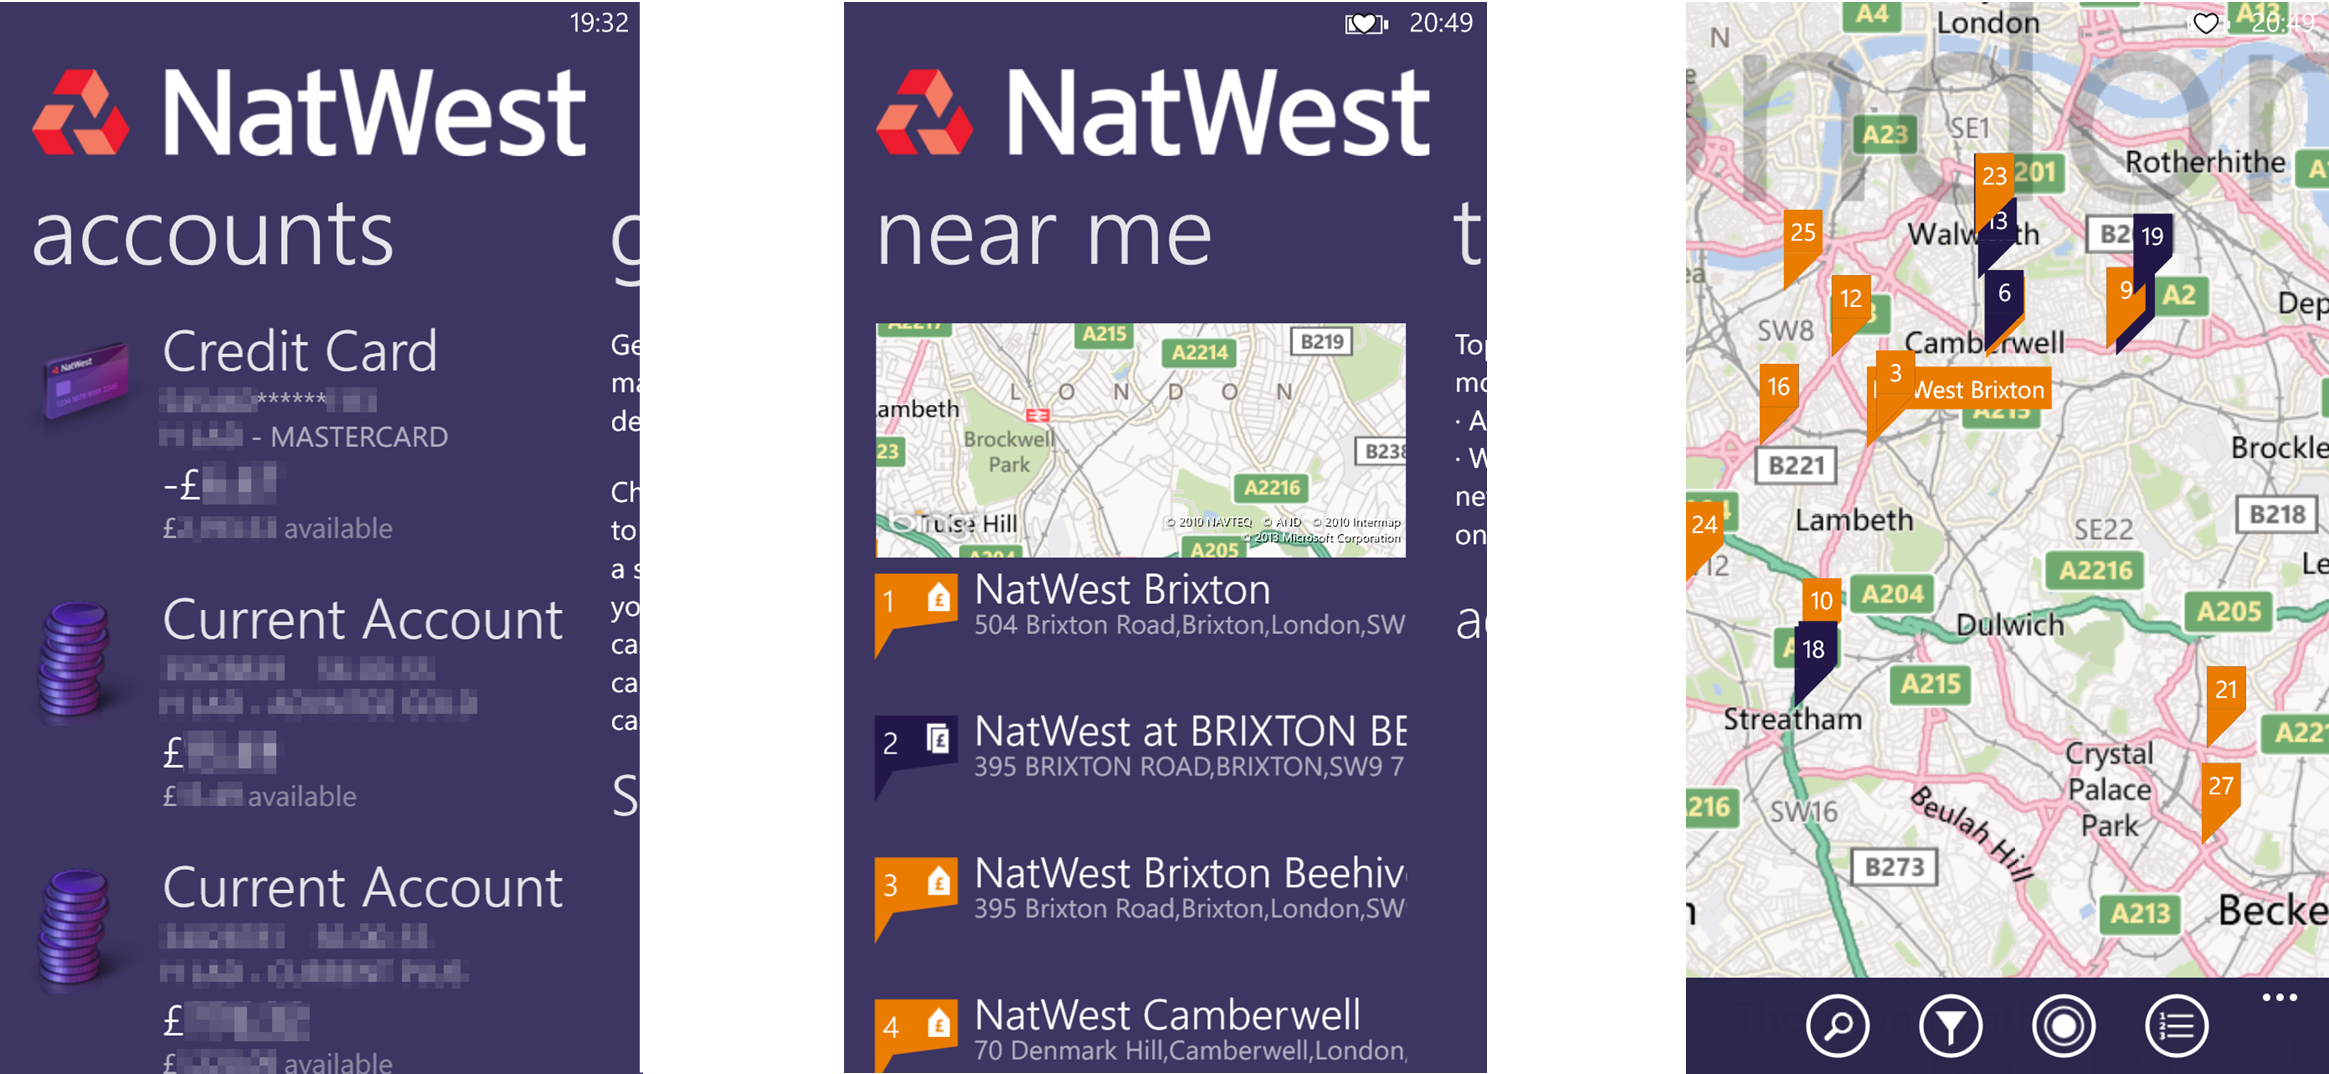 NatWest App (4) Accounts and Branches